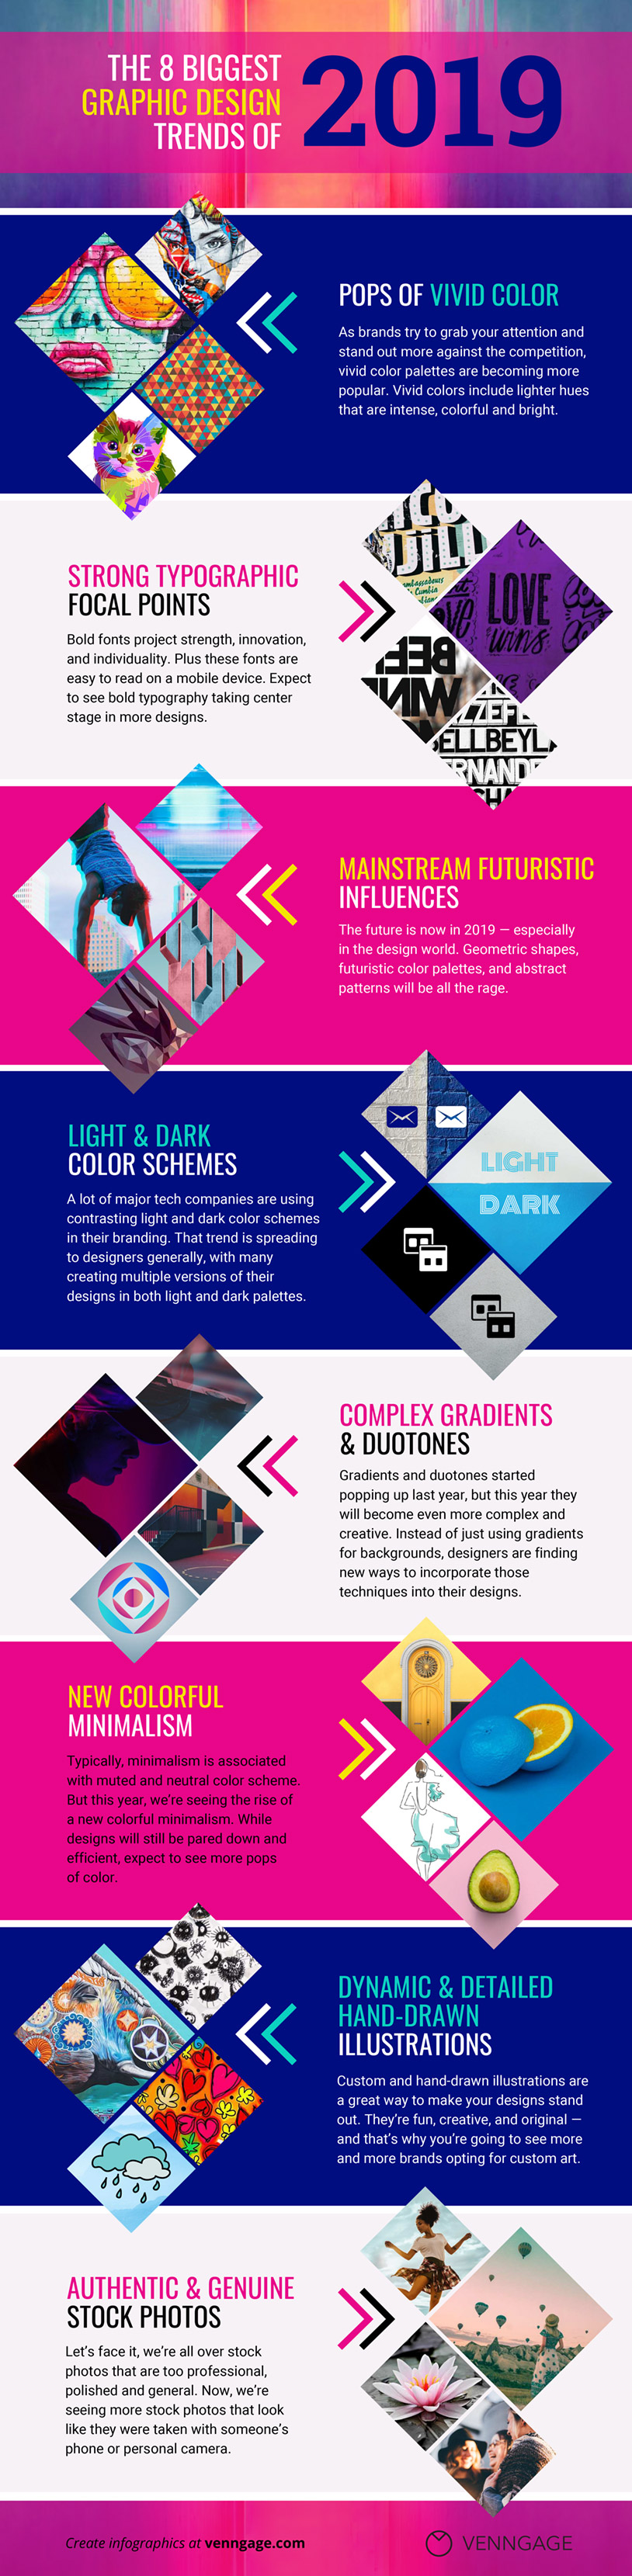 8-New-Graphic-Design-Trends-That-Will-Dominate